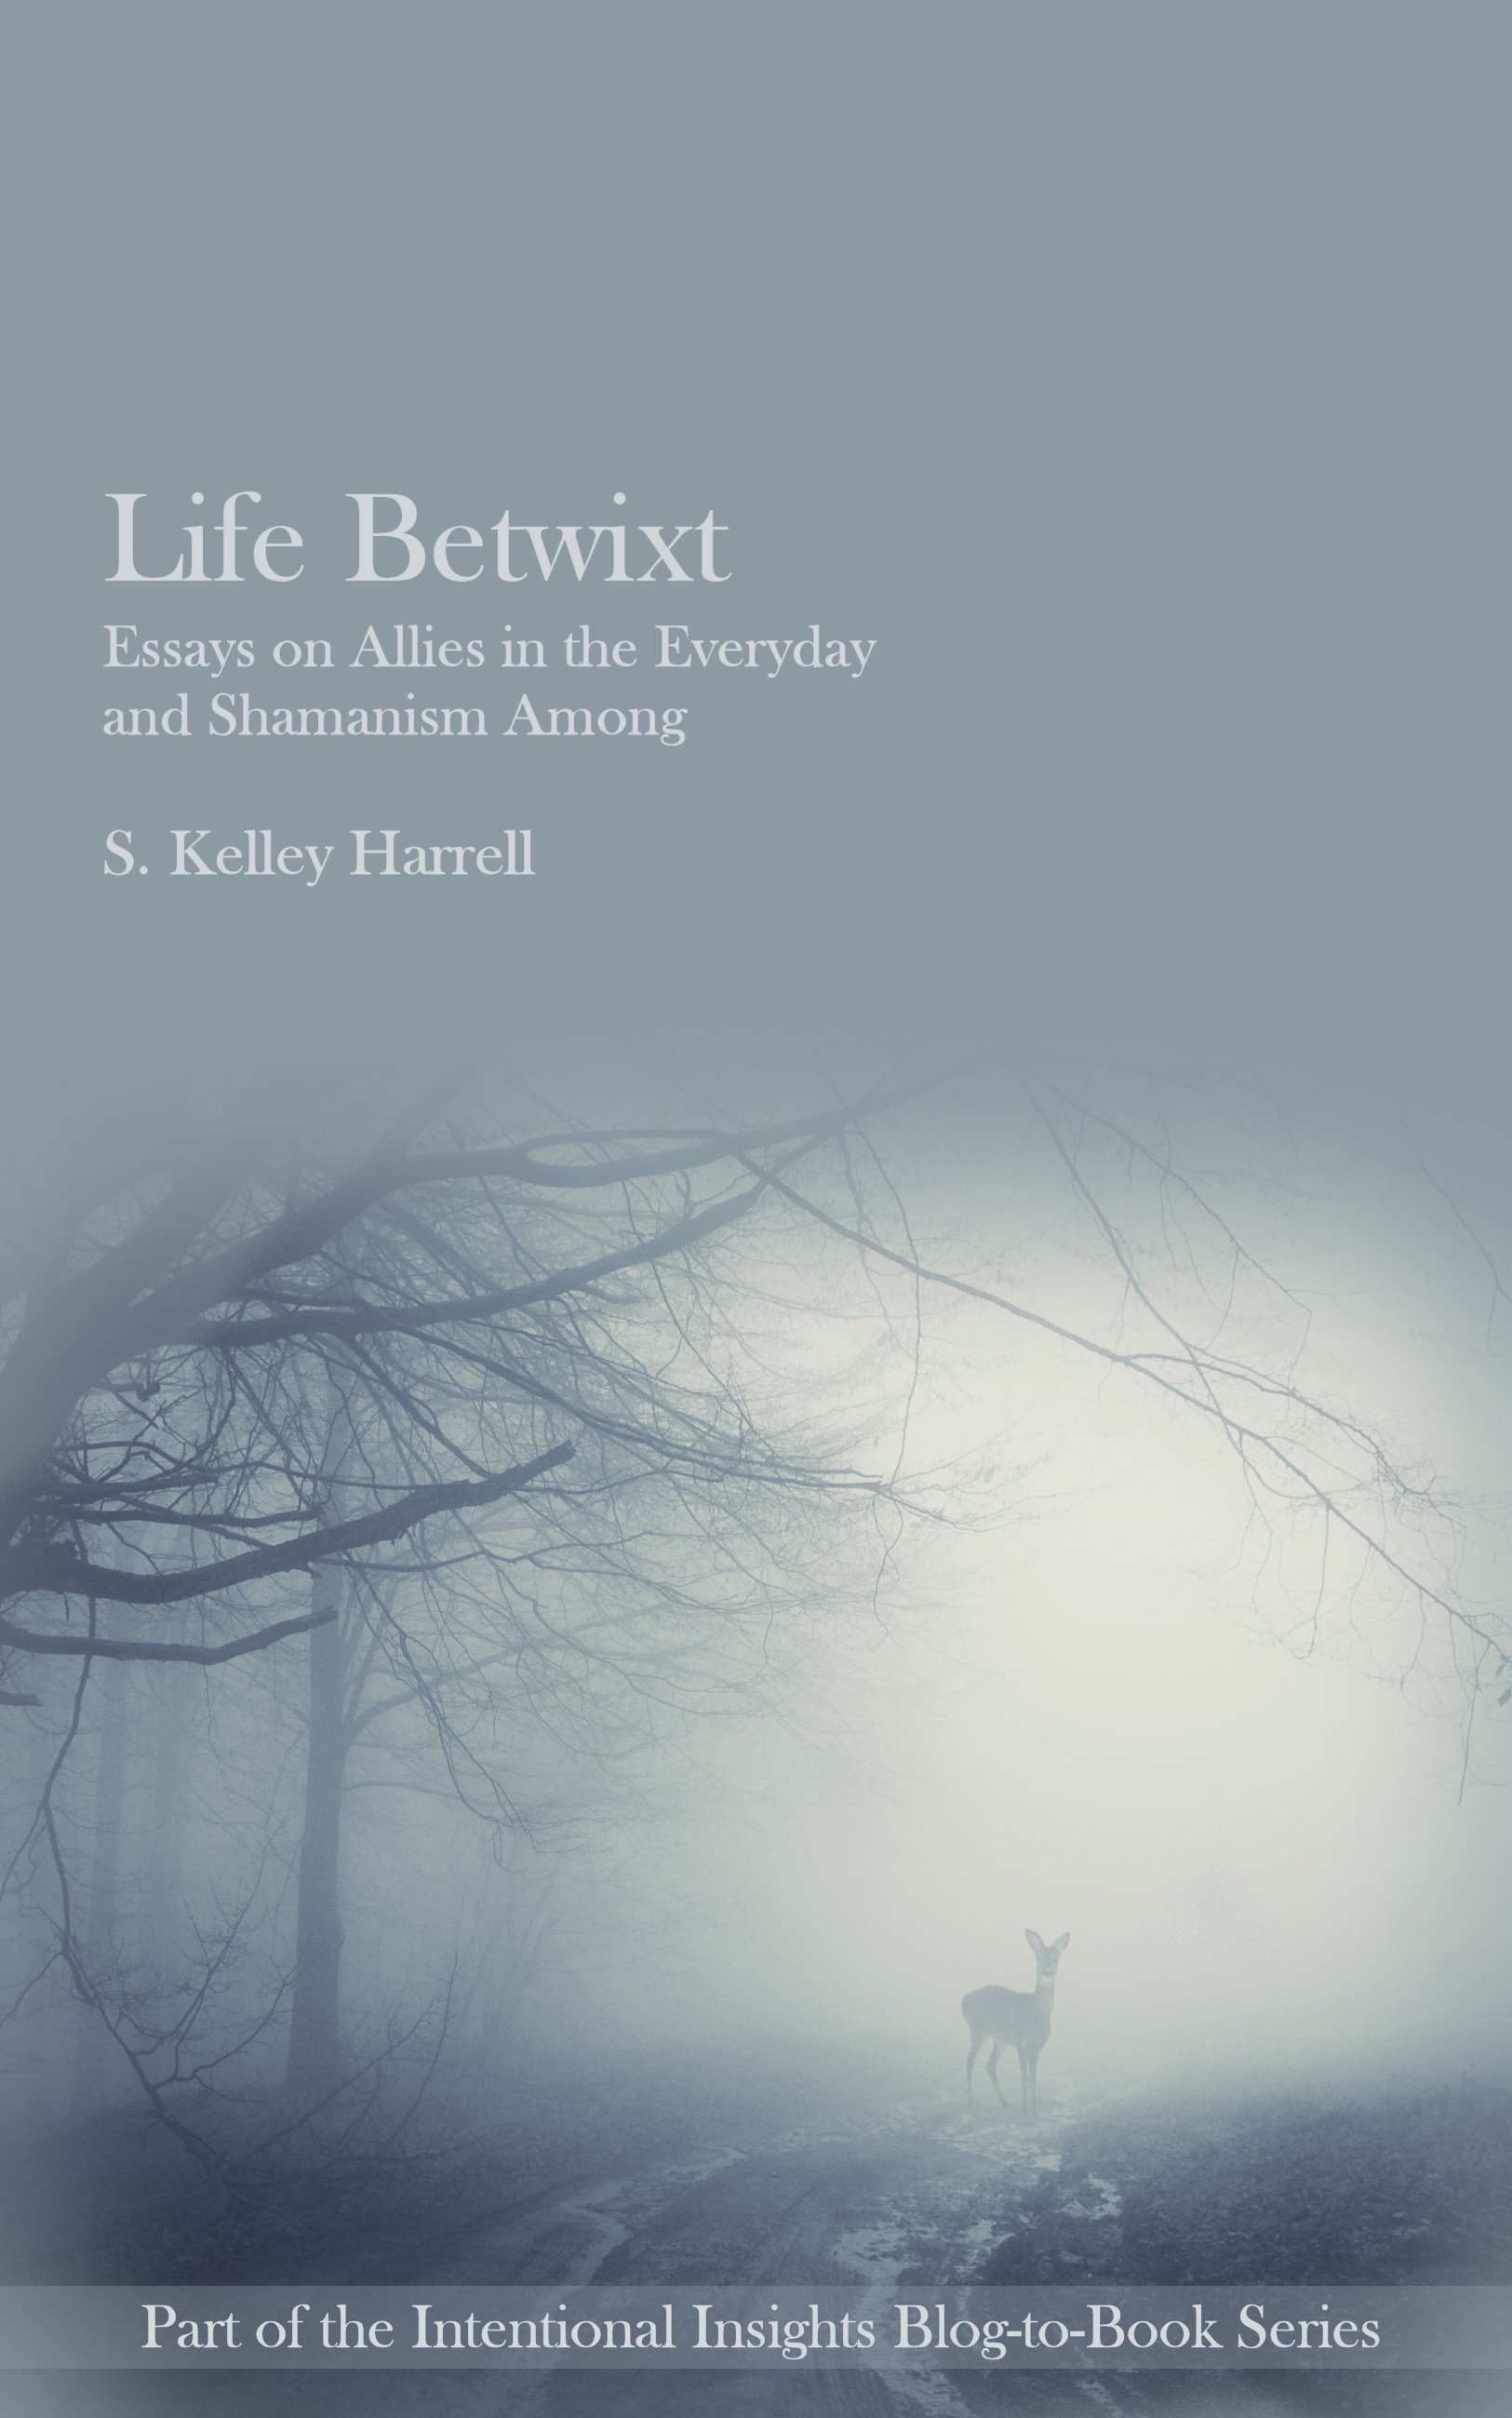 Life Betwixt--Essays on Allies in the Everyday and Shamanism Among by S. Kelley Harrell